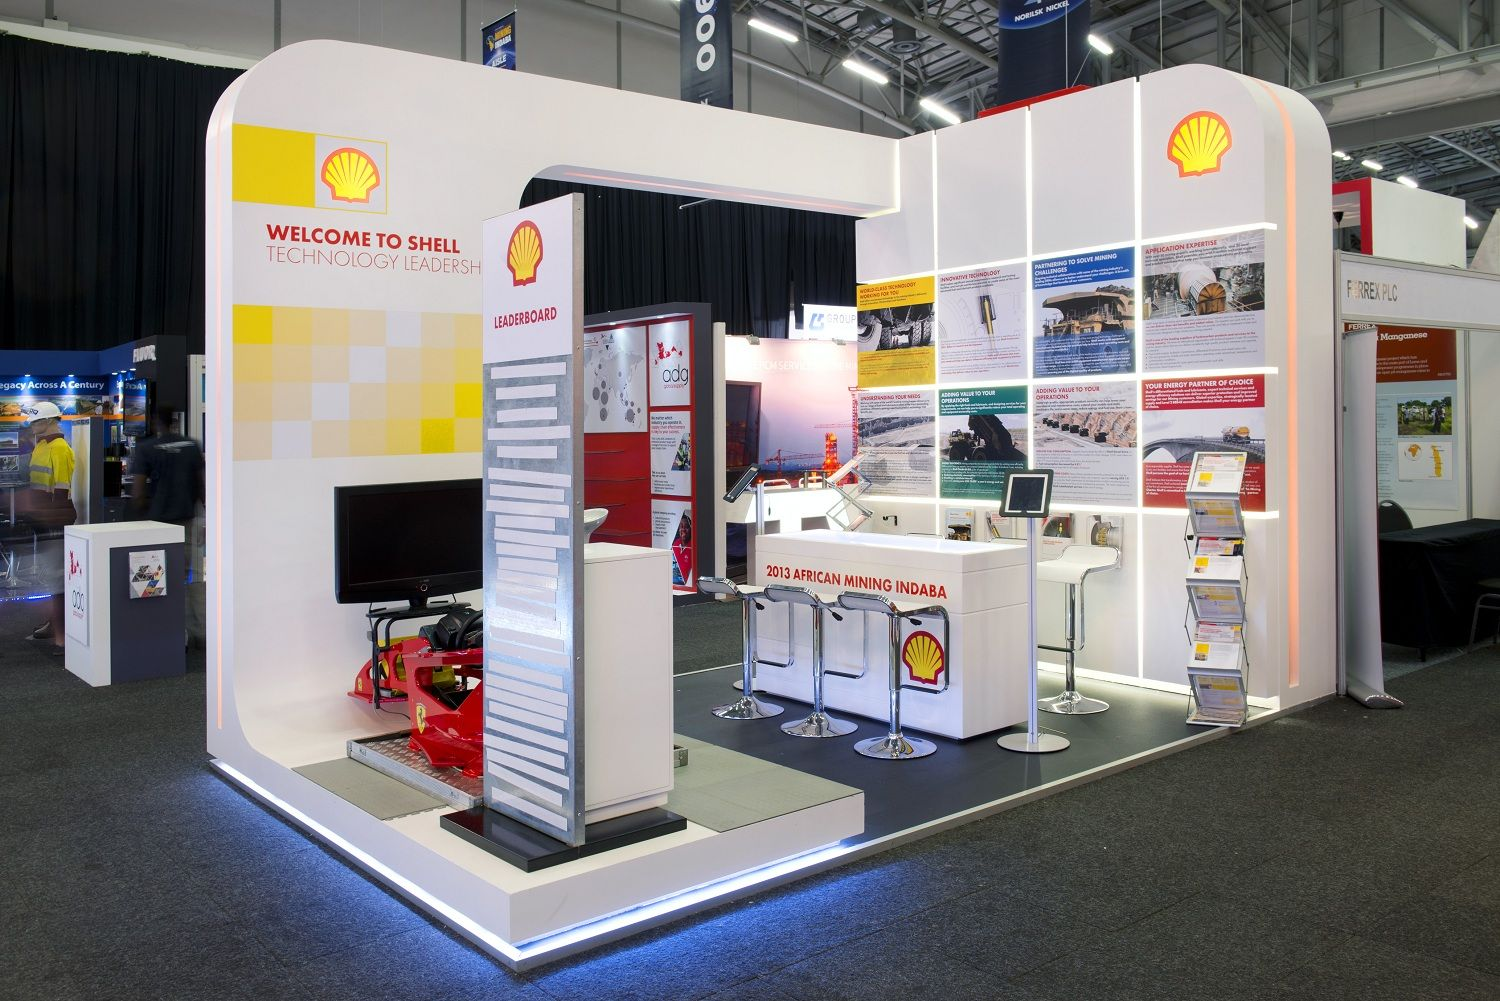 Shell Exhibition Kirkcaldy : Shell mining indaba south africa trade show